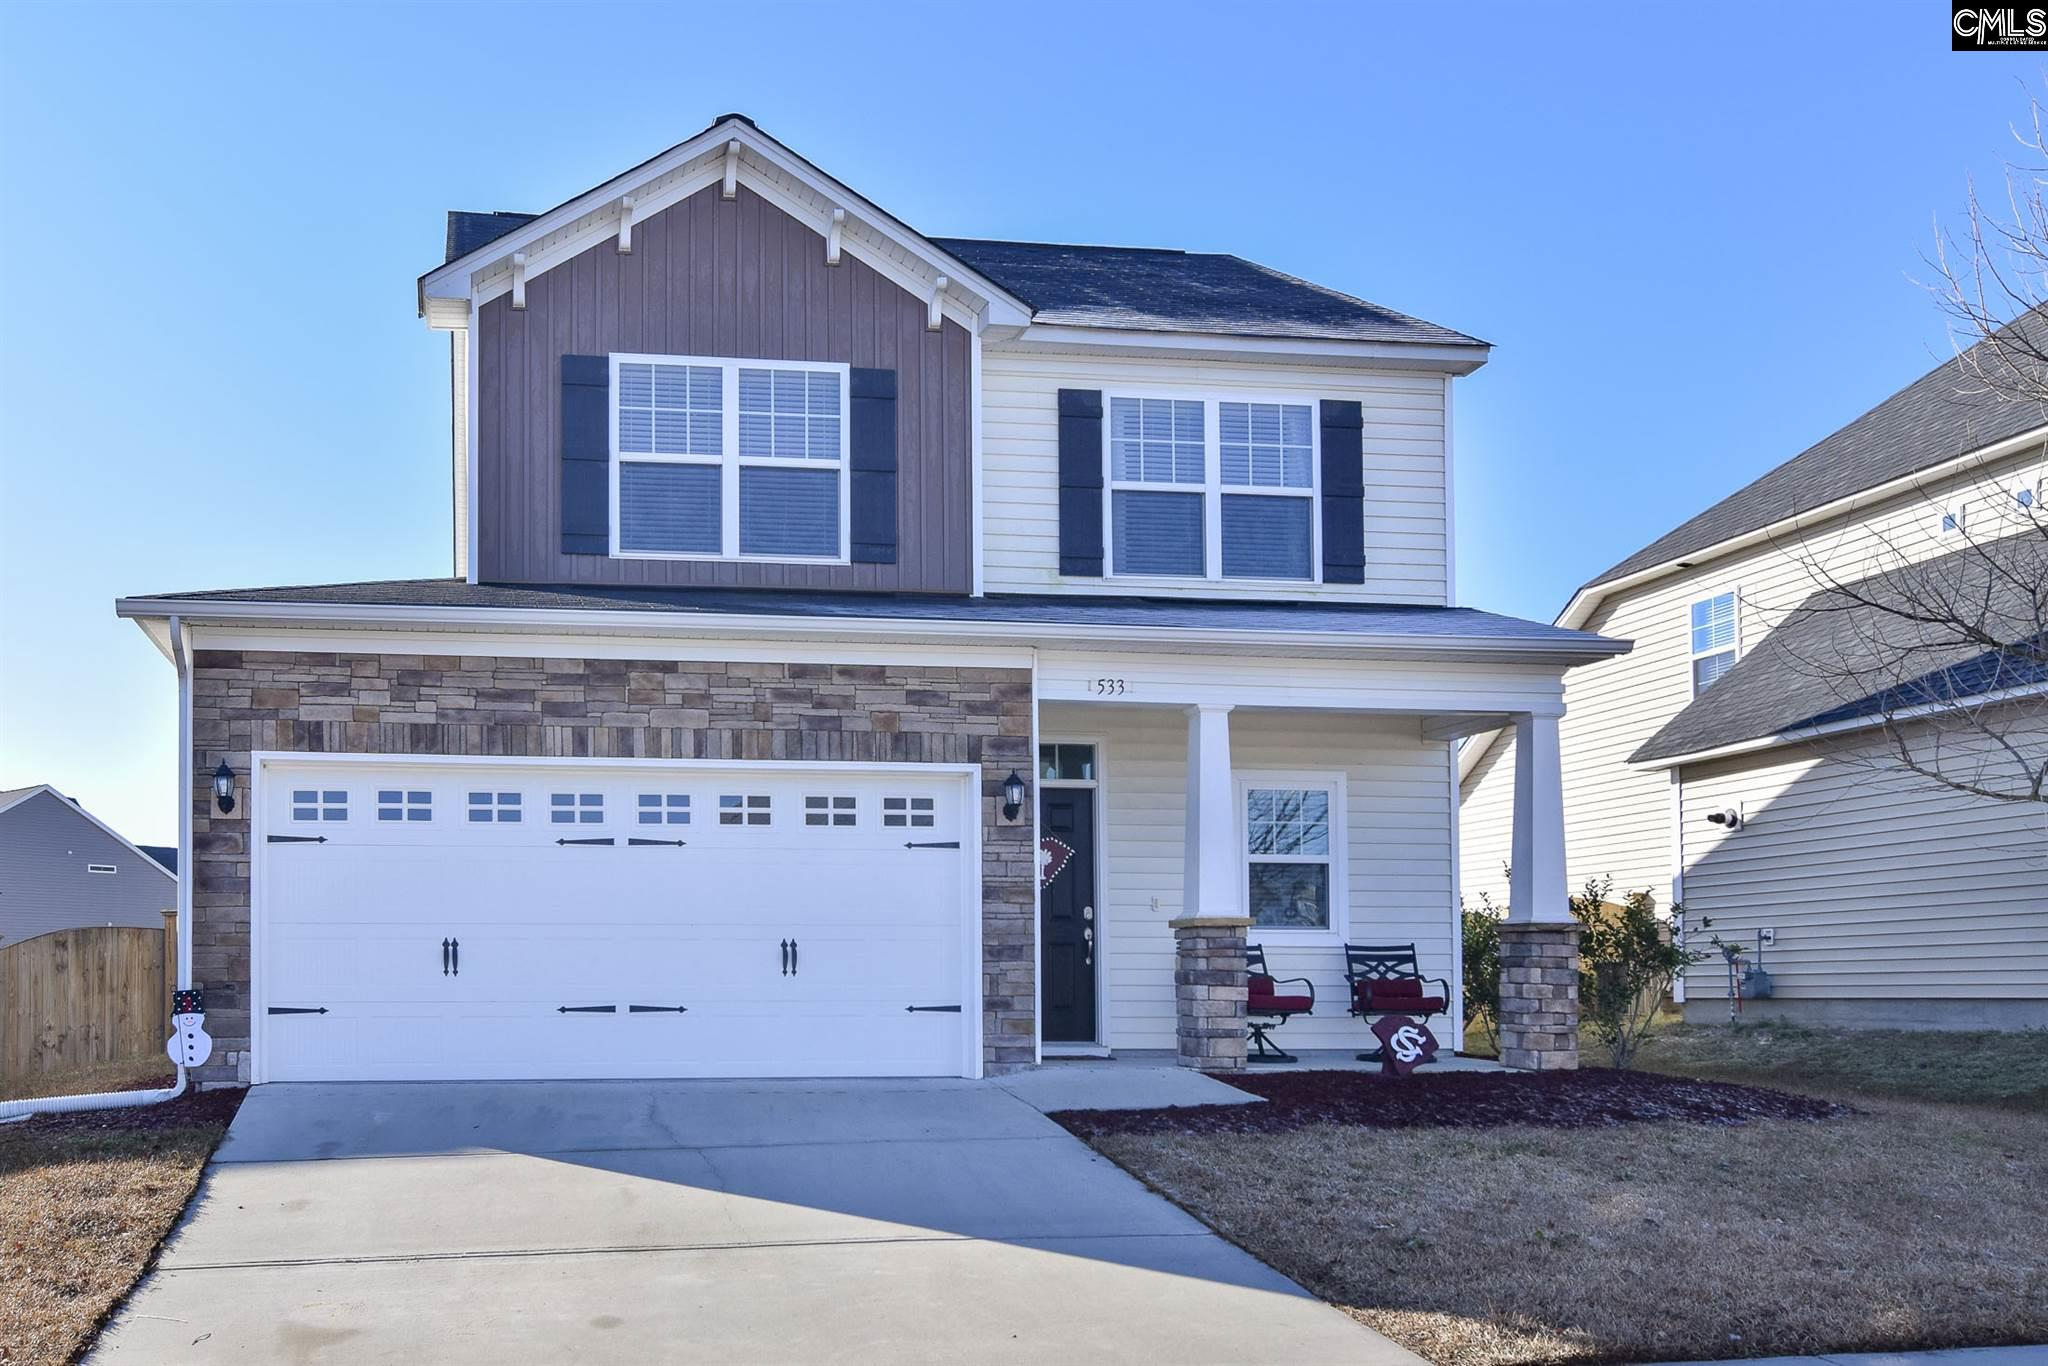 533 Blue Ledge Lexington, SC 29072